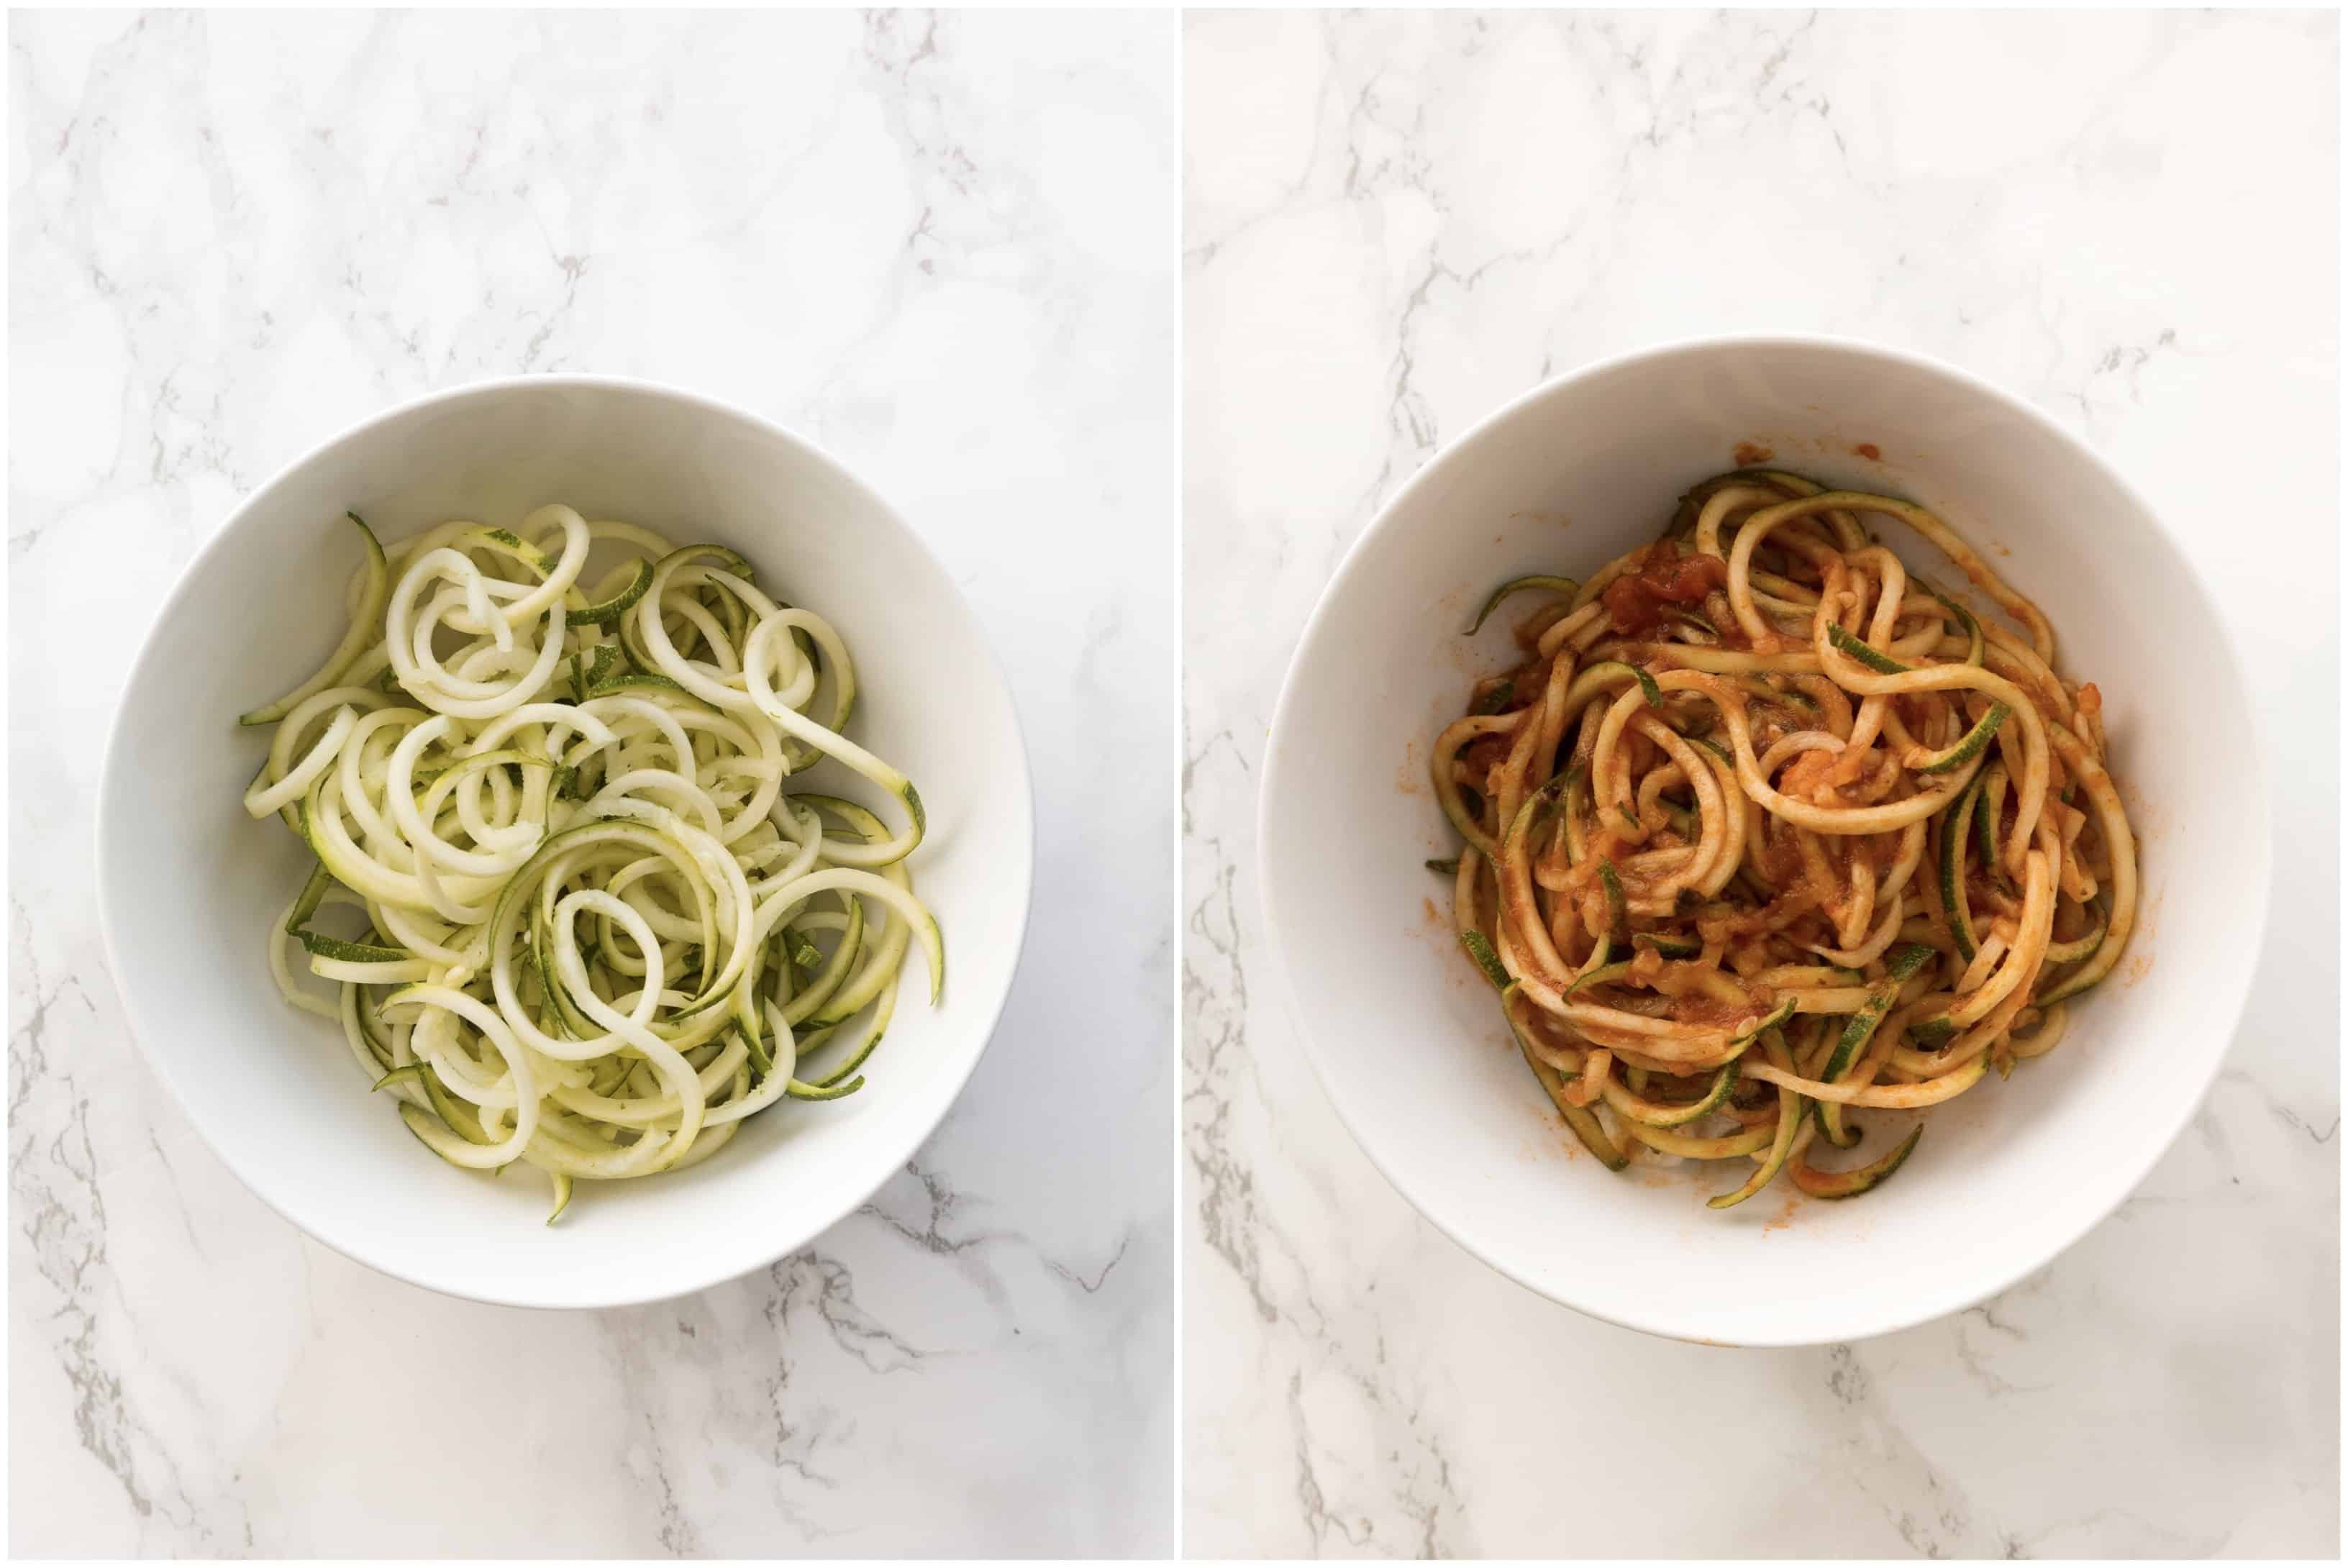 6 Healthy Pasta Alternatives - Zucchini Noodles or Zoodles